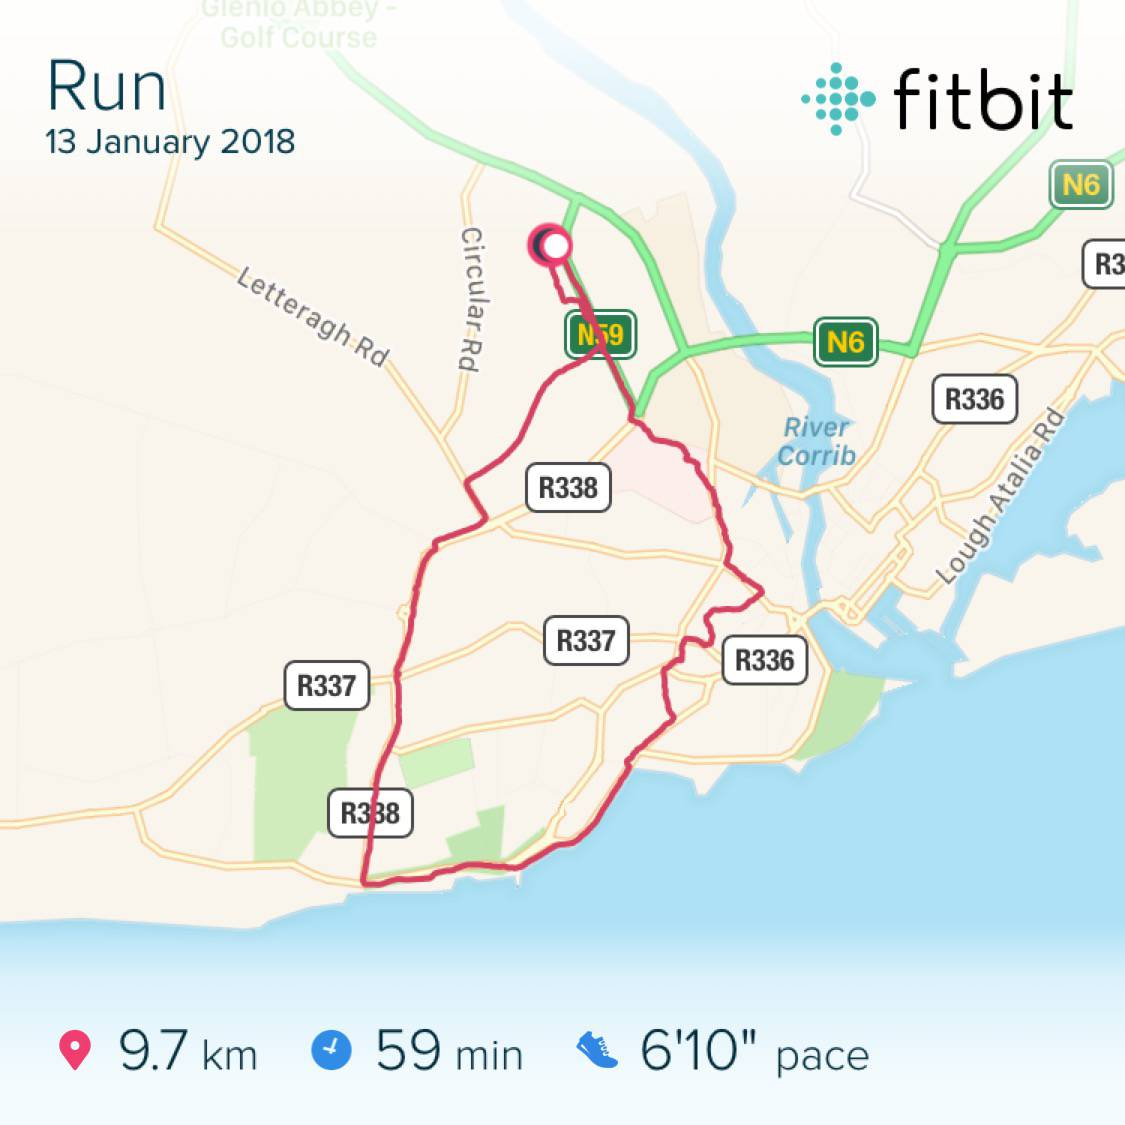 FitBit map of running route